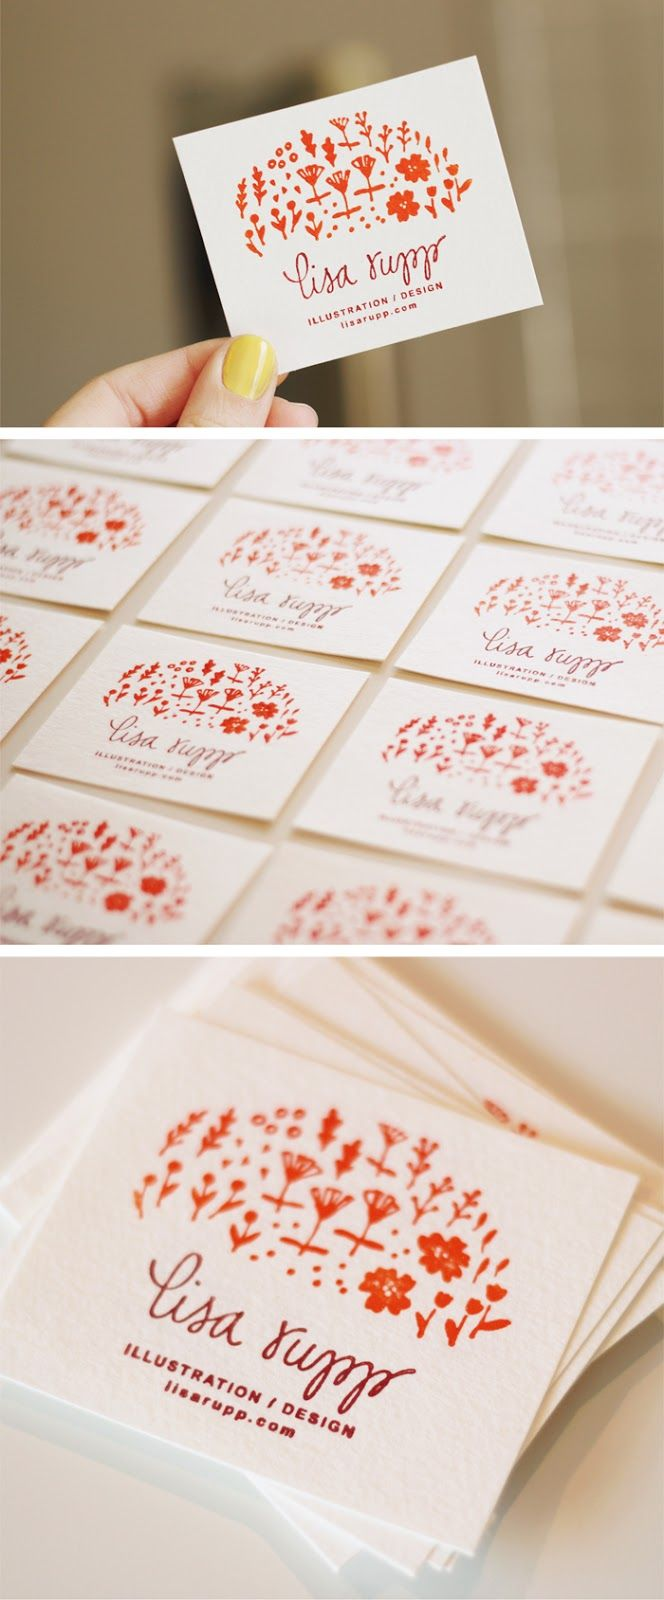 508 best Business card images on Pinterest | Business cards ...